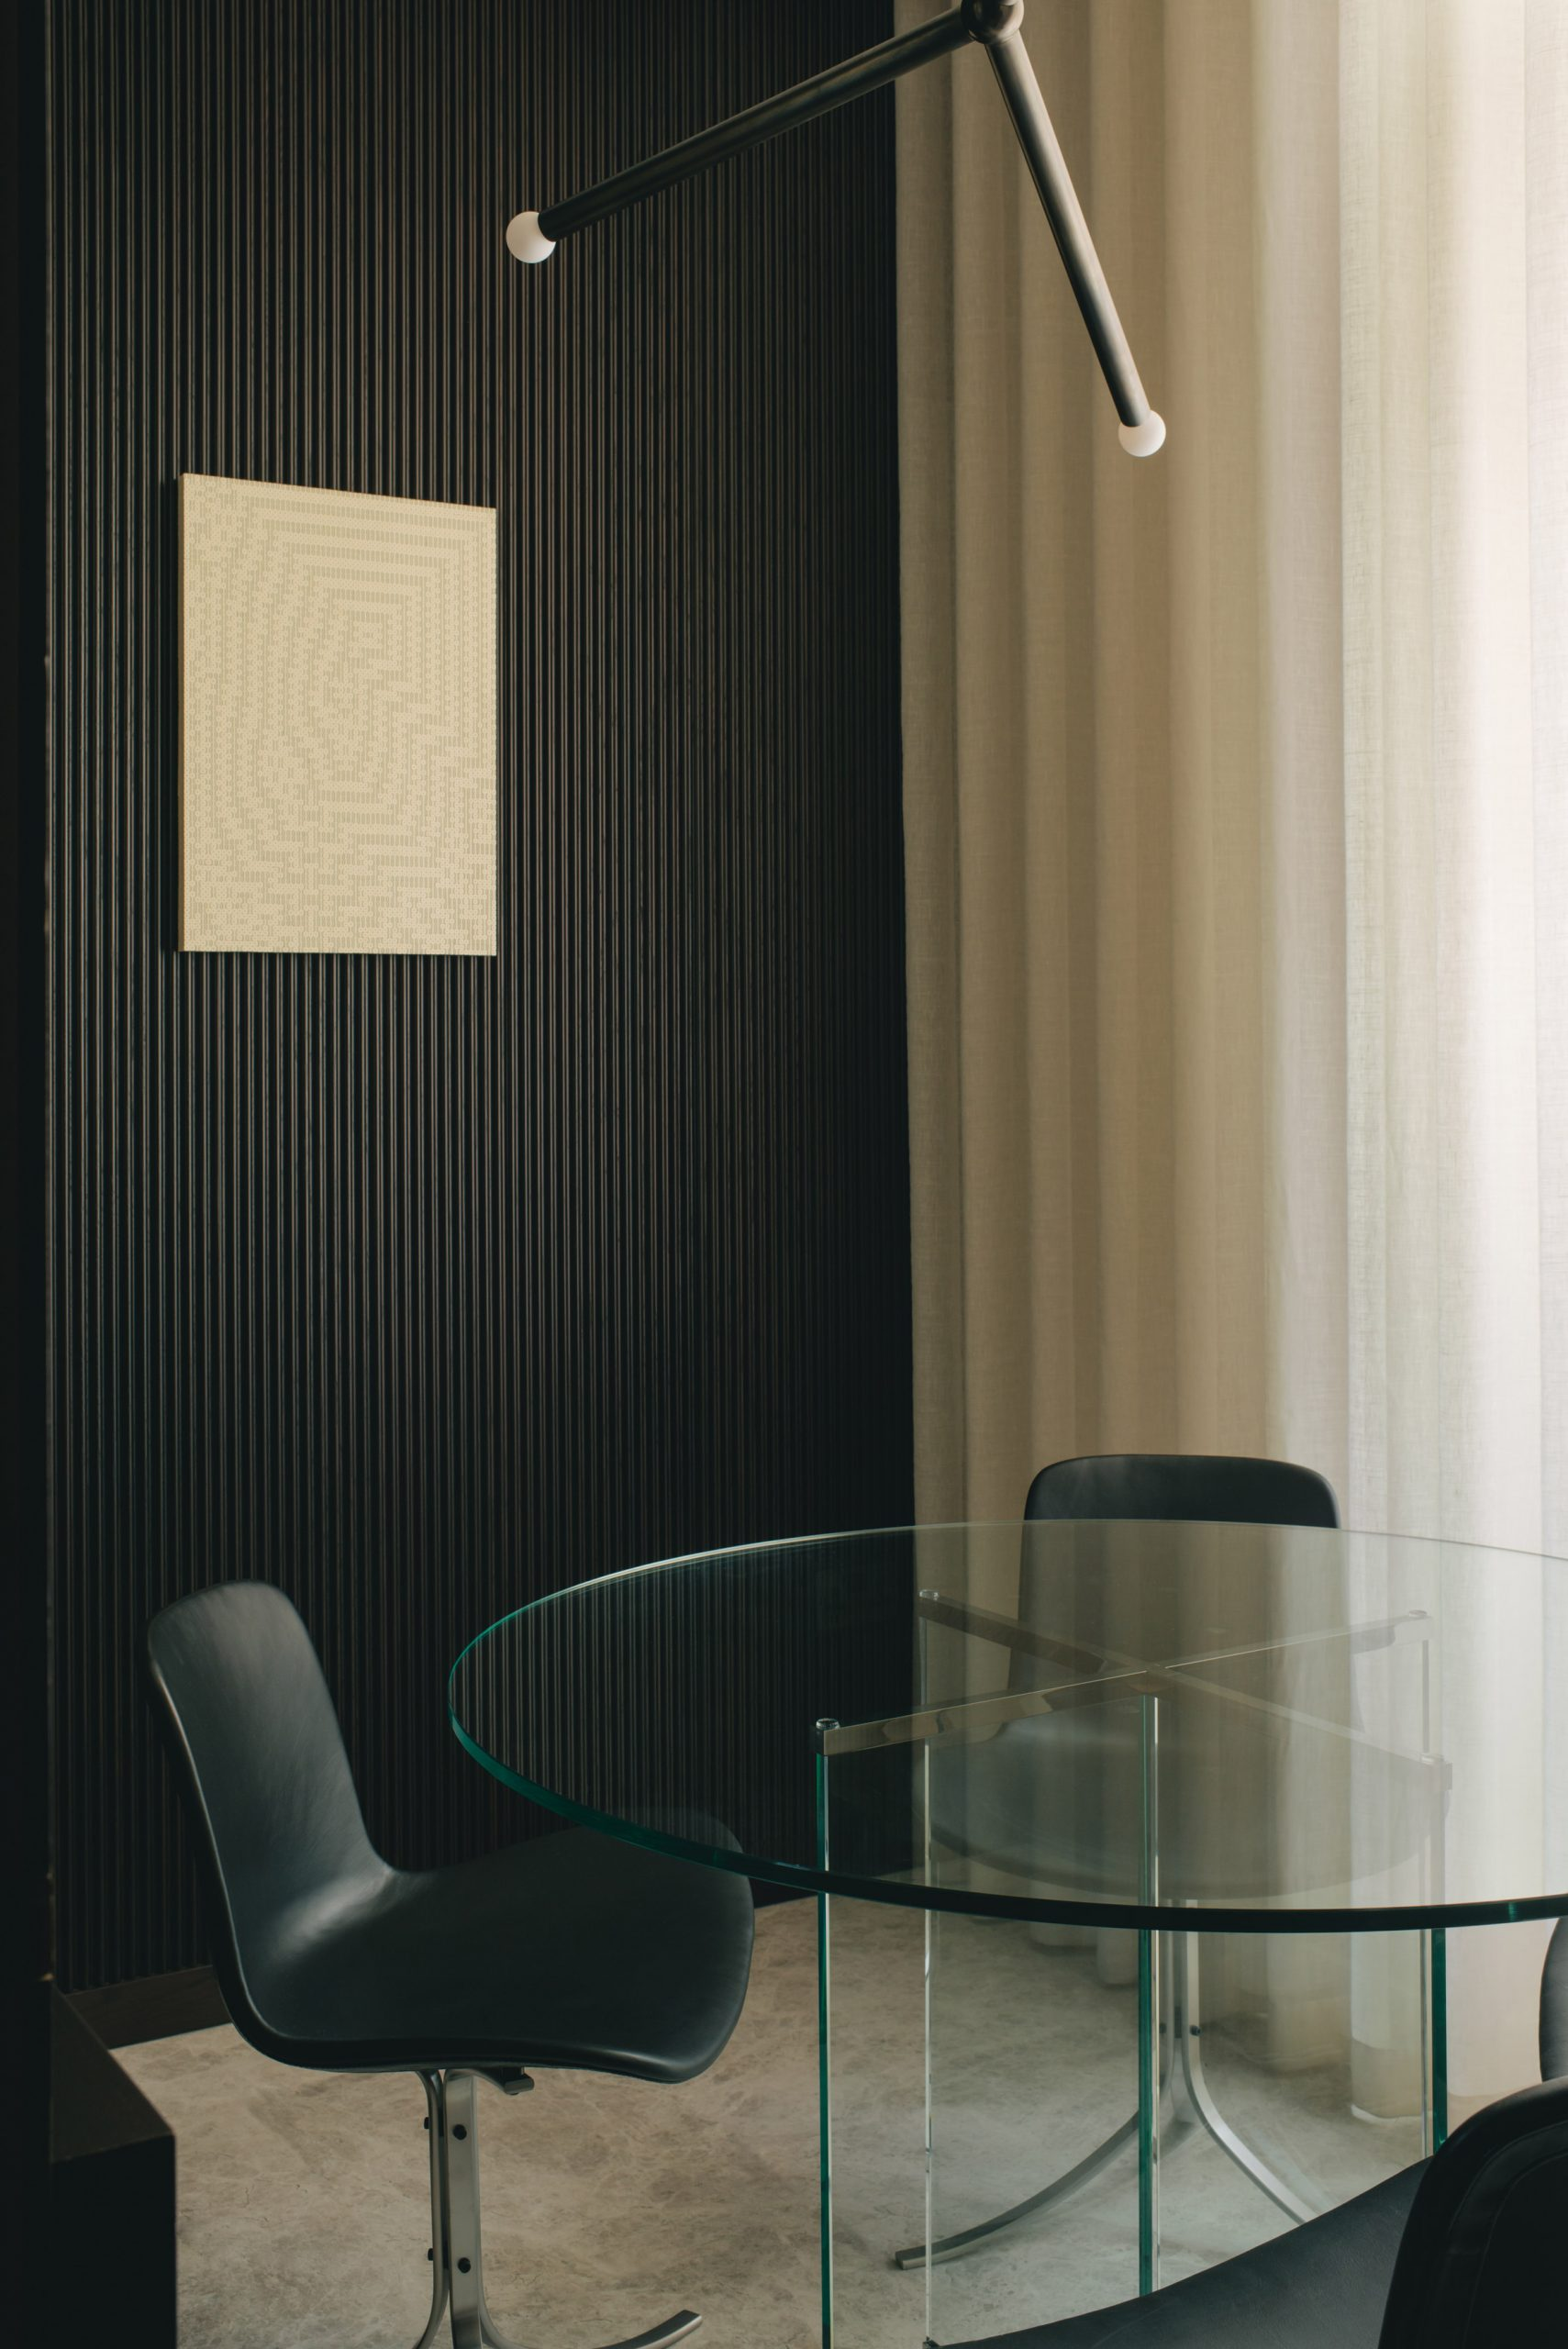 Glass table with black chairs and black panelled walls in Mandeville Place office